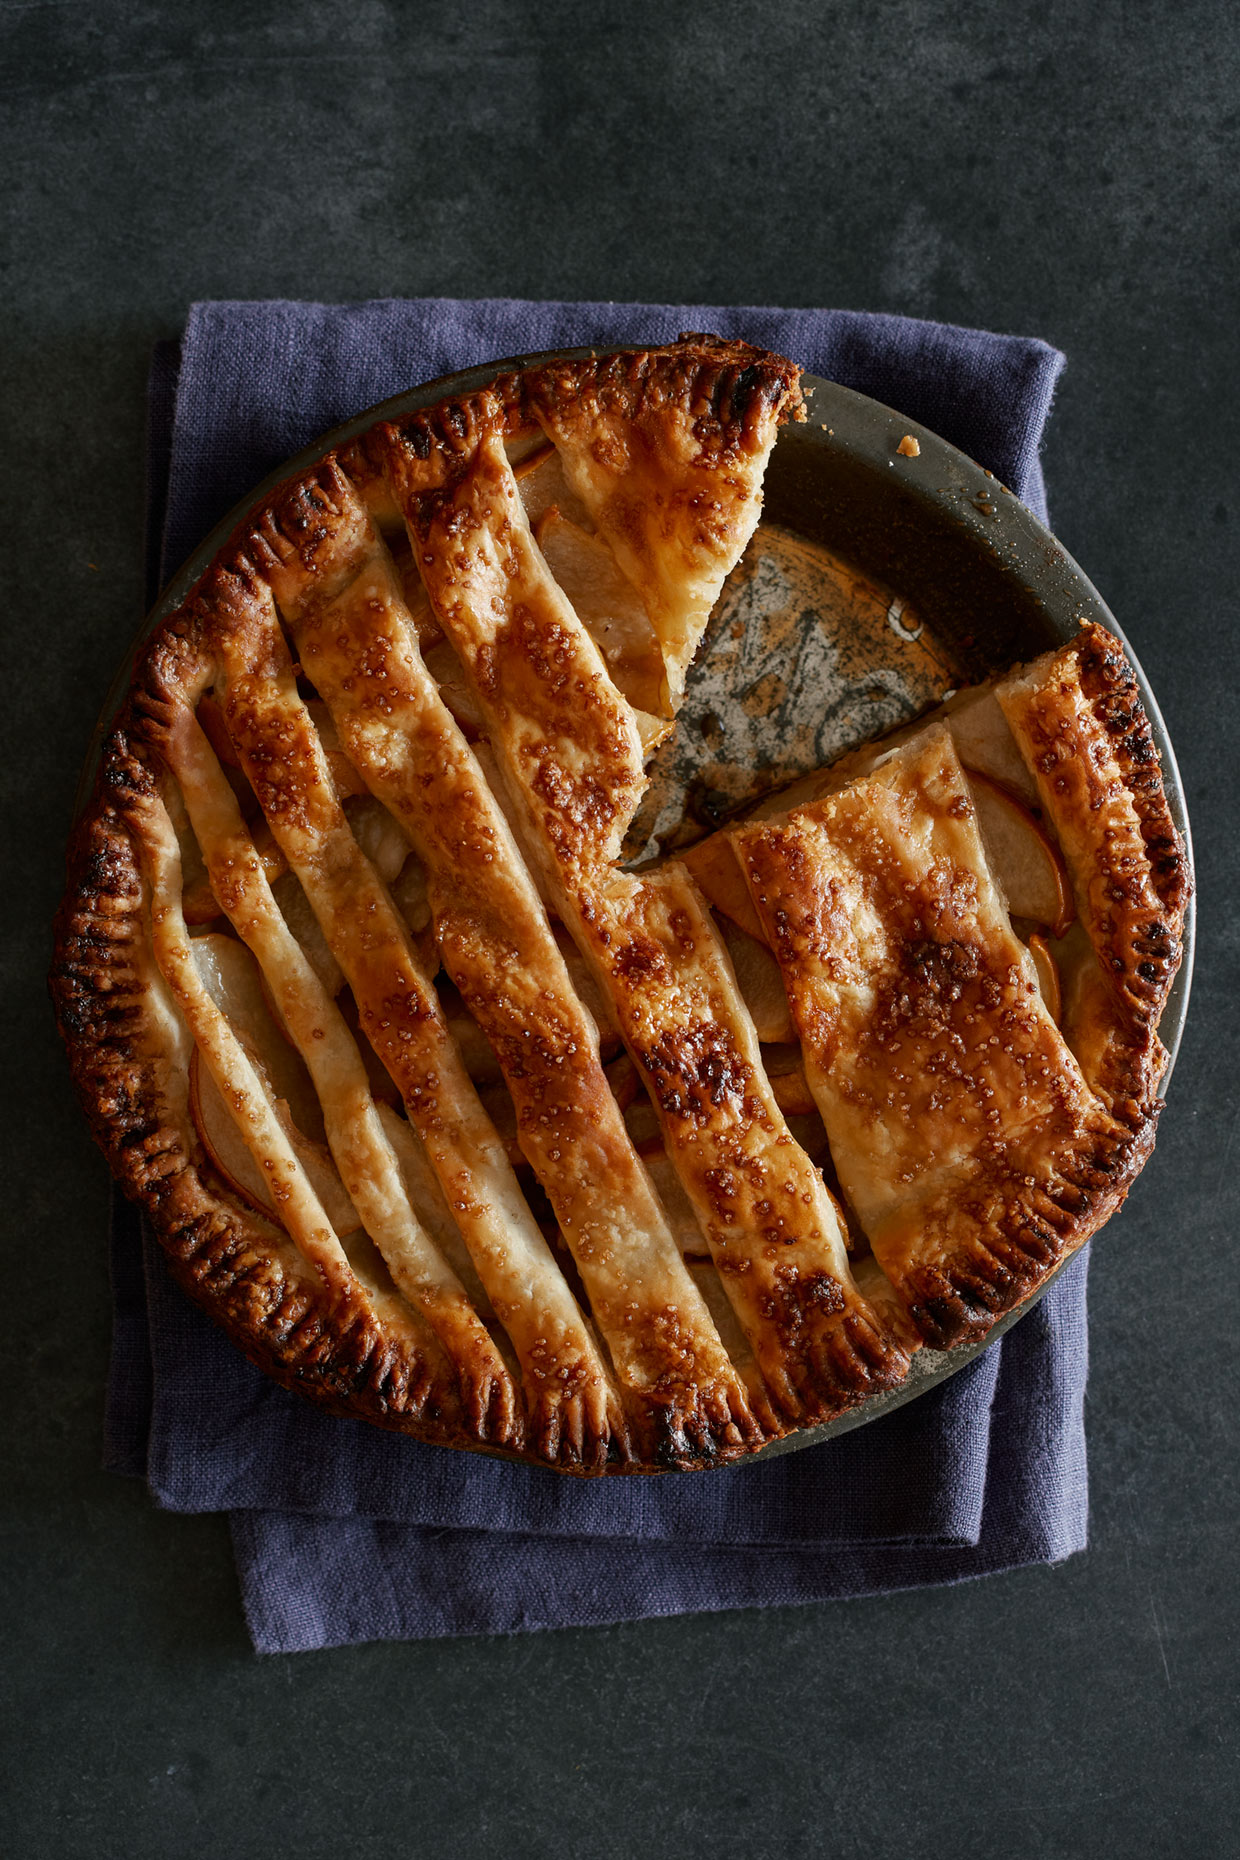 Pie photography by Teri Lyn Fisher a food photographer